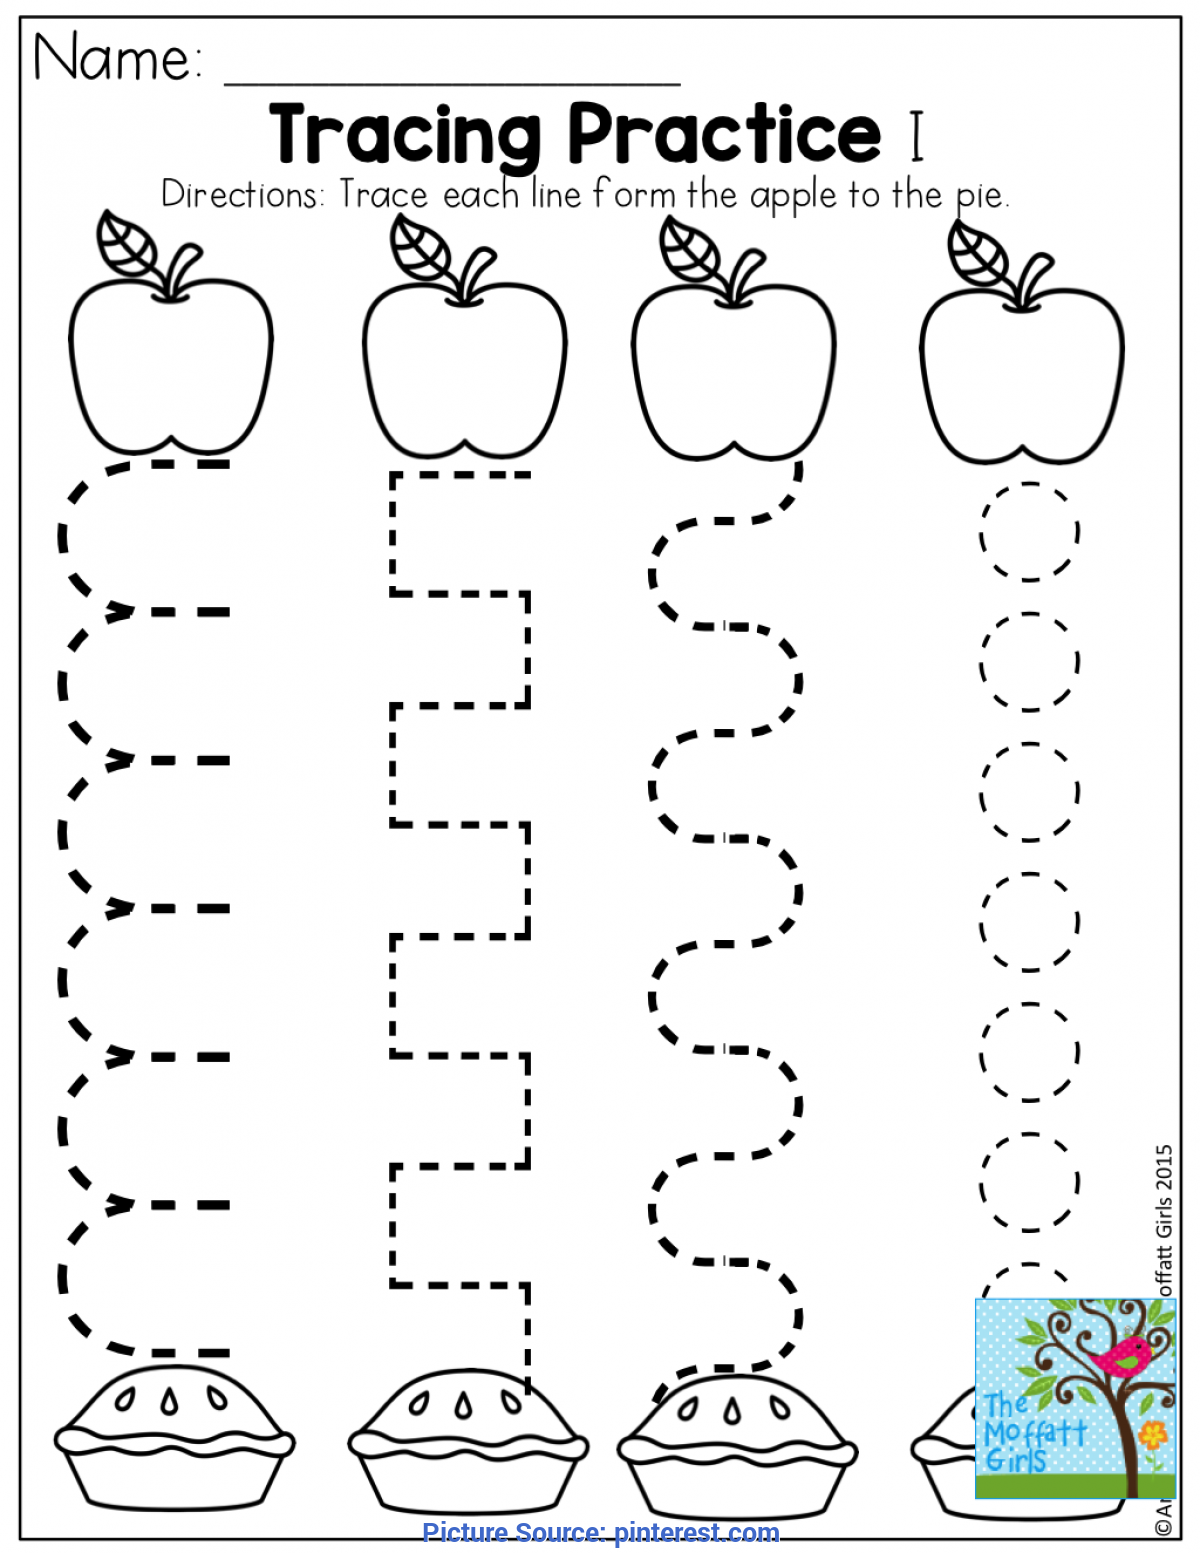 Newest Back To School Lesson Plans Preschool Tracing Practice And Tons Of Other Fun Pages For Back To Schoo